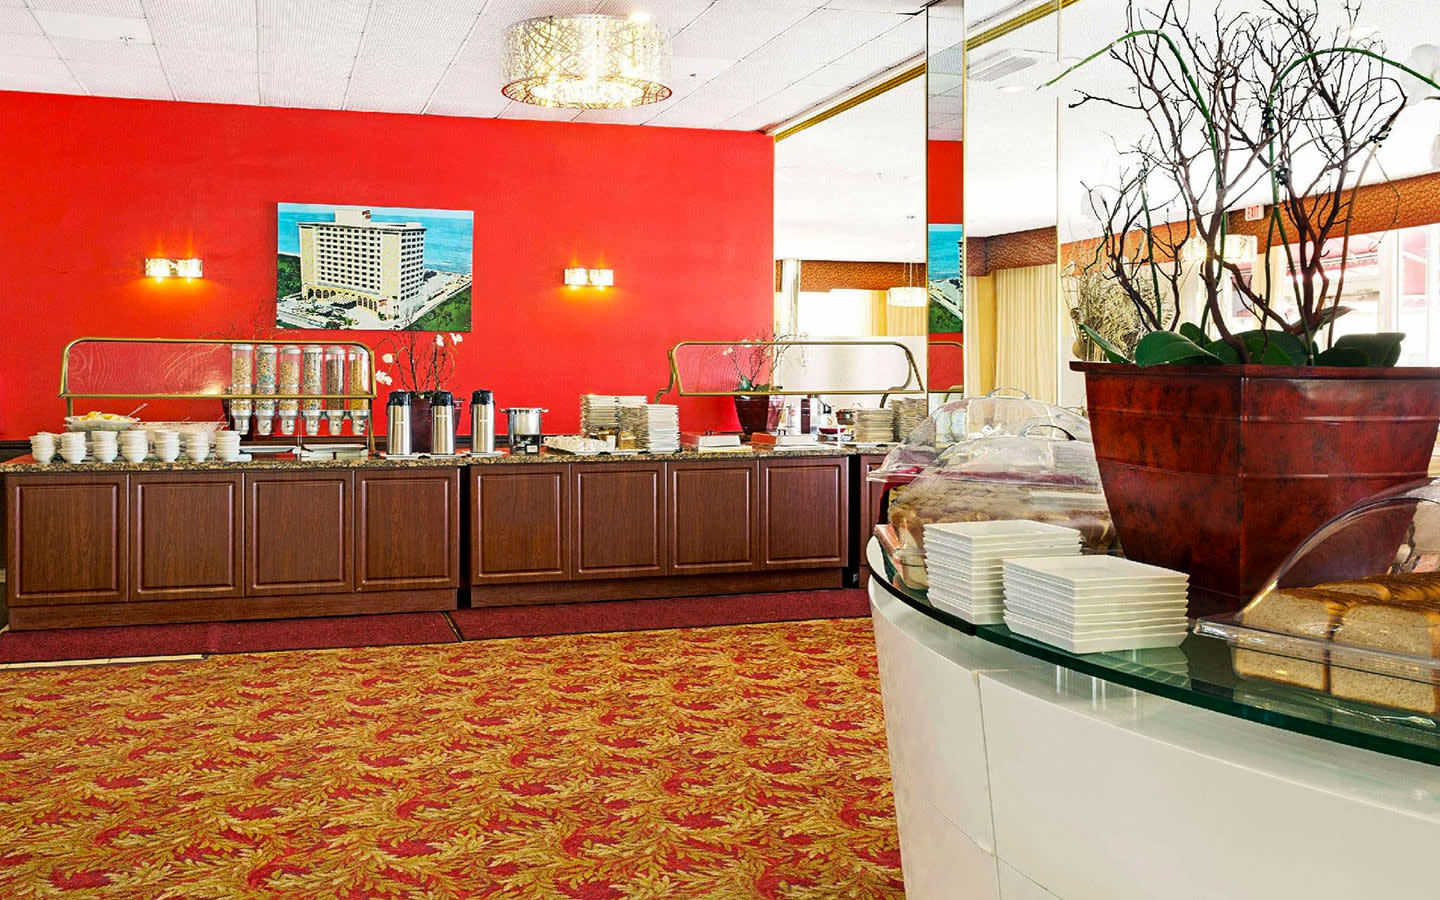 Ocean Terrace Restaurant Buffet